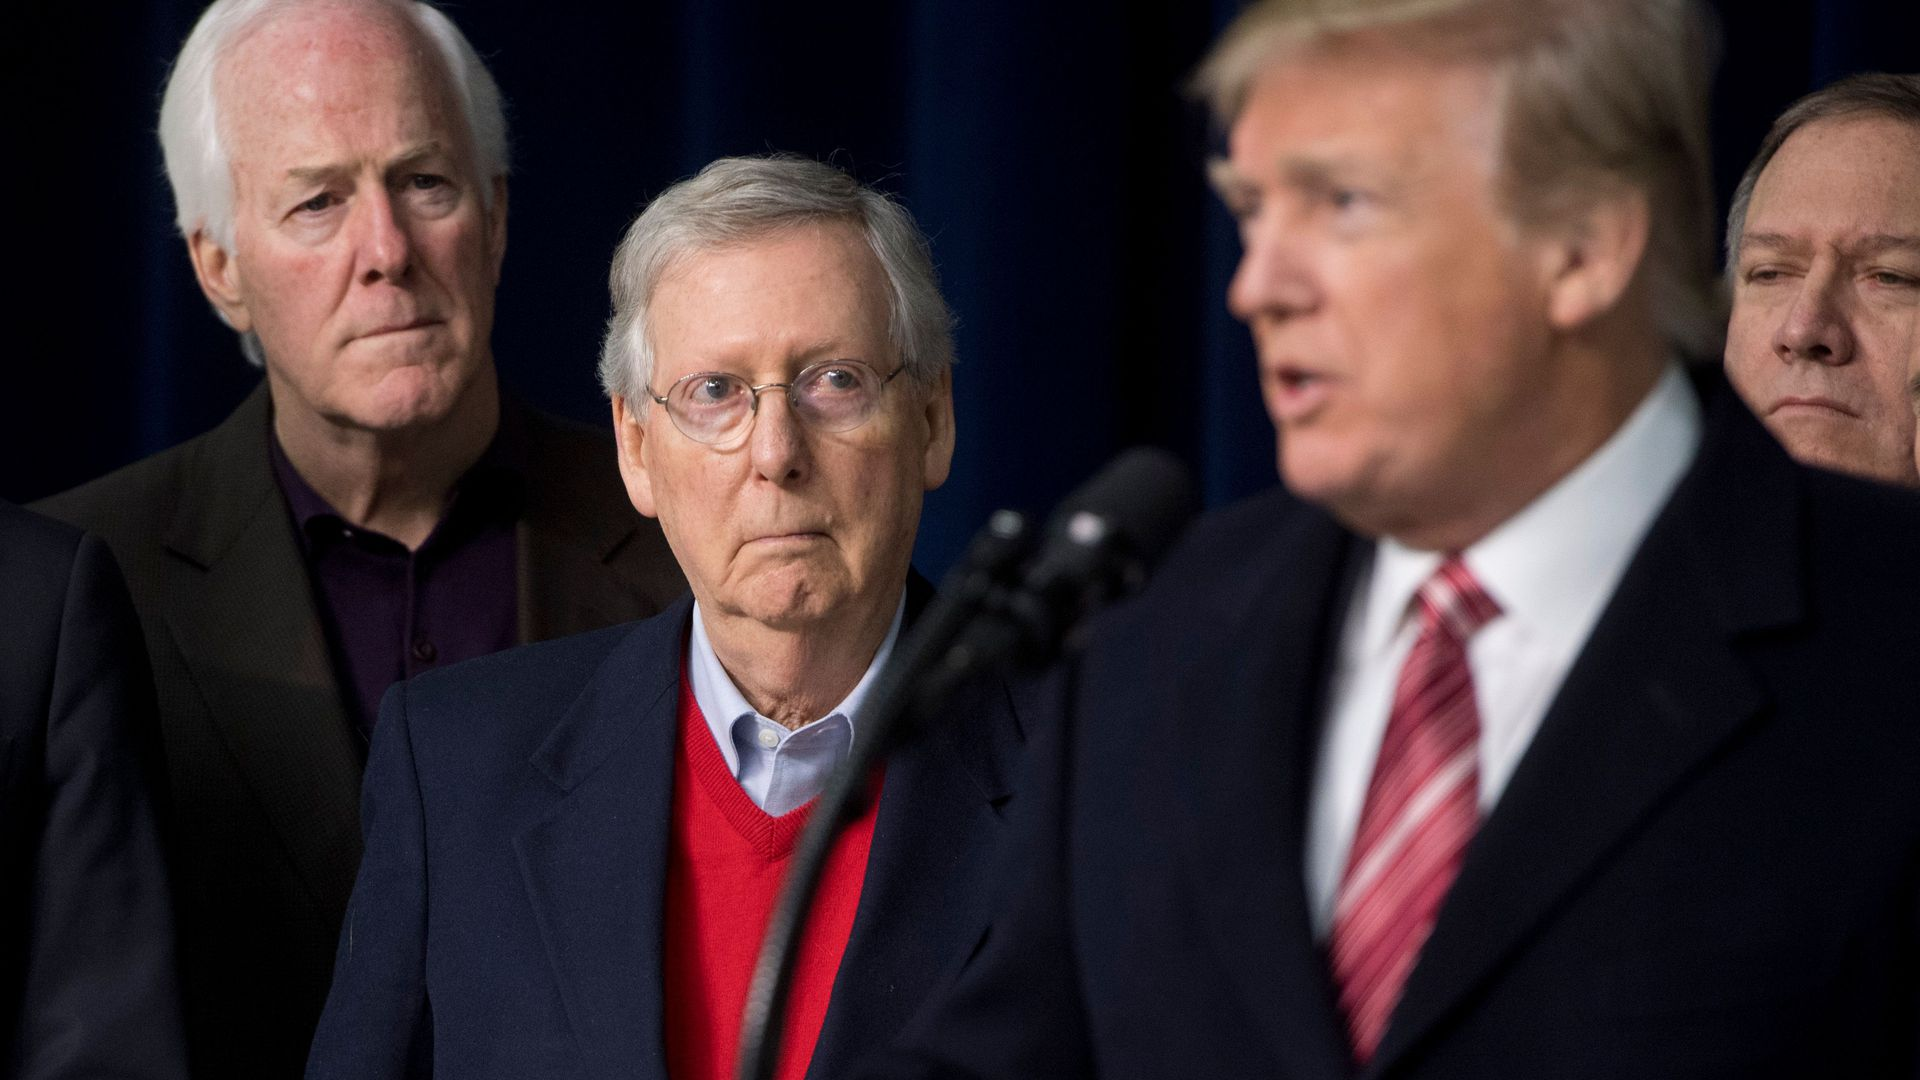 John Cornyn, Mitch McConnell and Donald Trump